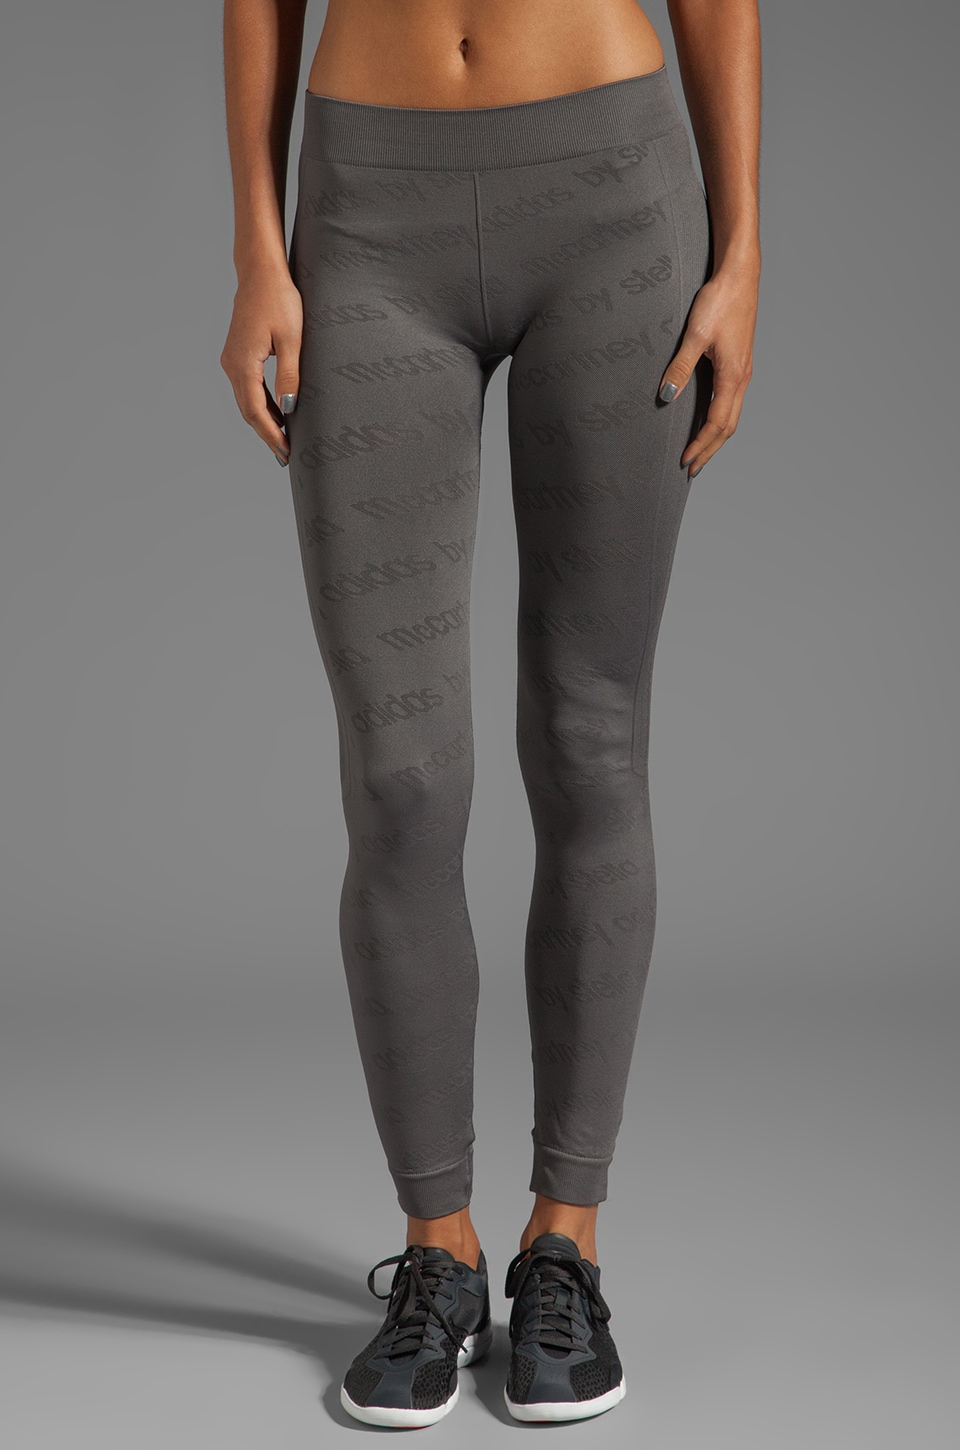 adidas by Stella McCartney WS Perf SL Tight Legging in Sharp Grey